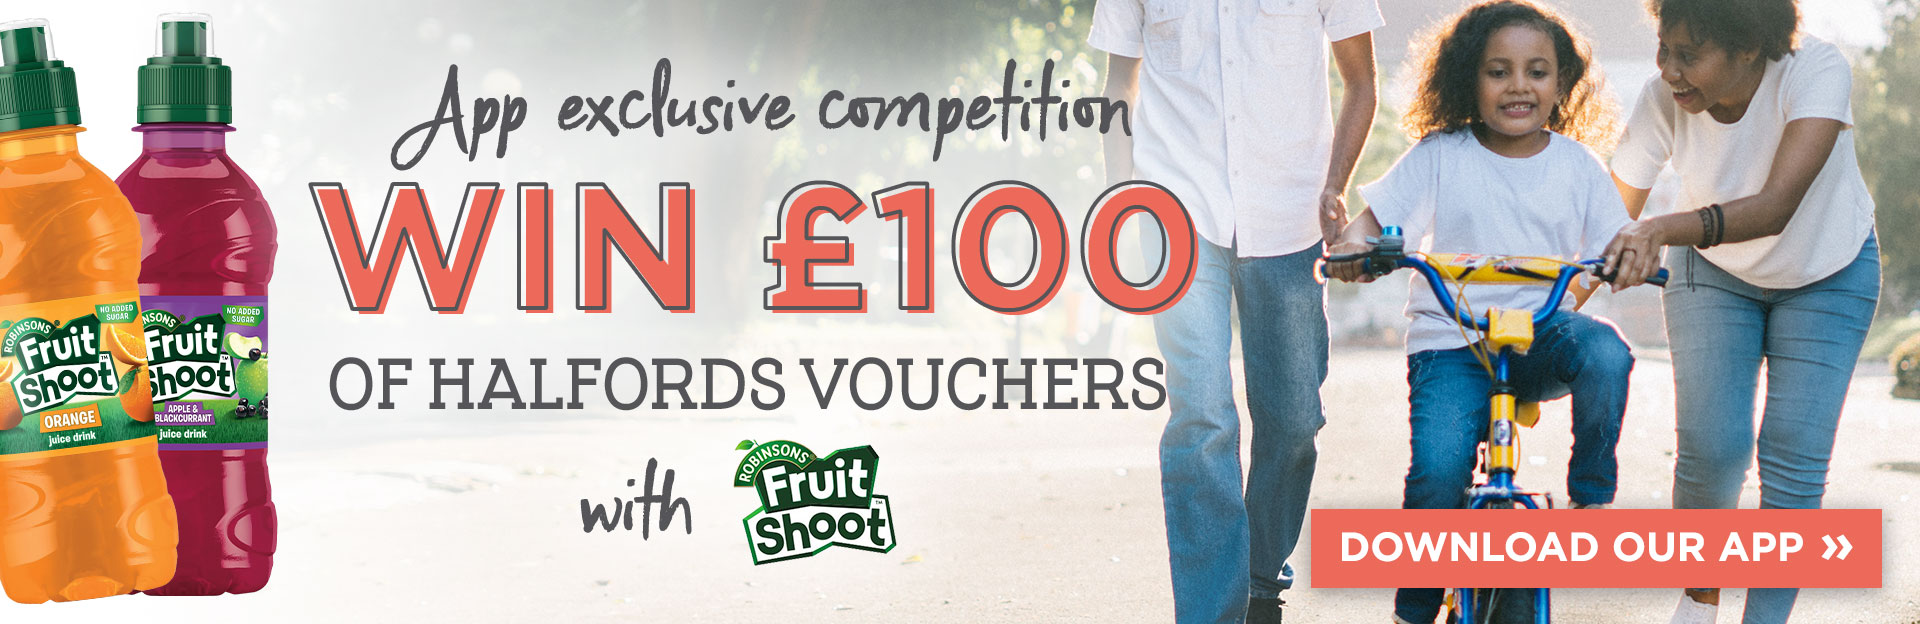 fruitshootcompetition-banner-downloadcta.jpg